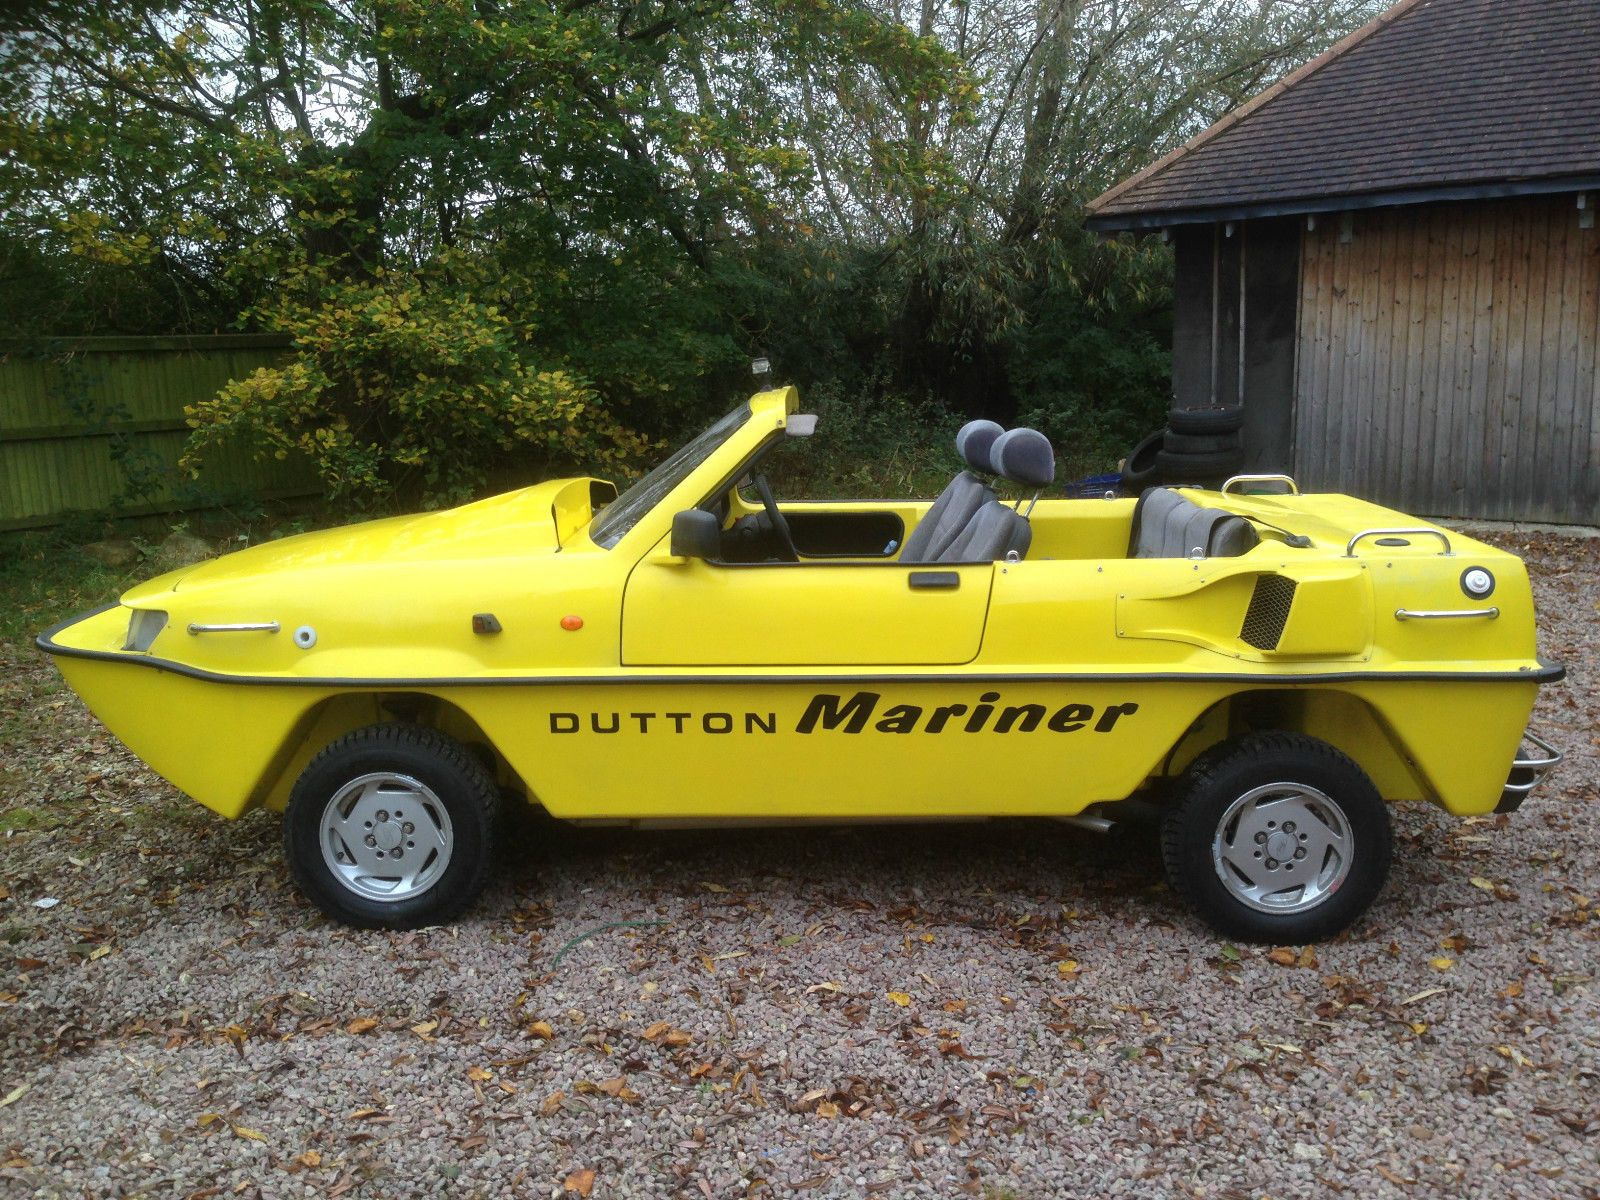 Dutton Mariner Amphibious Car Amphib Amphicar Twin Jet